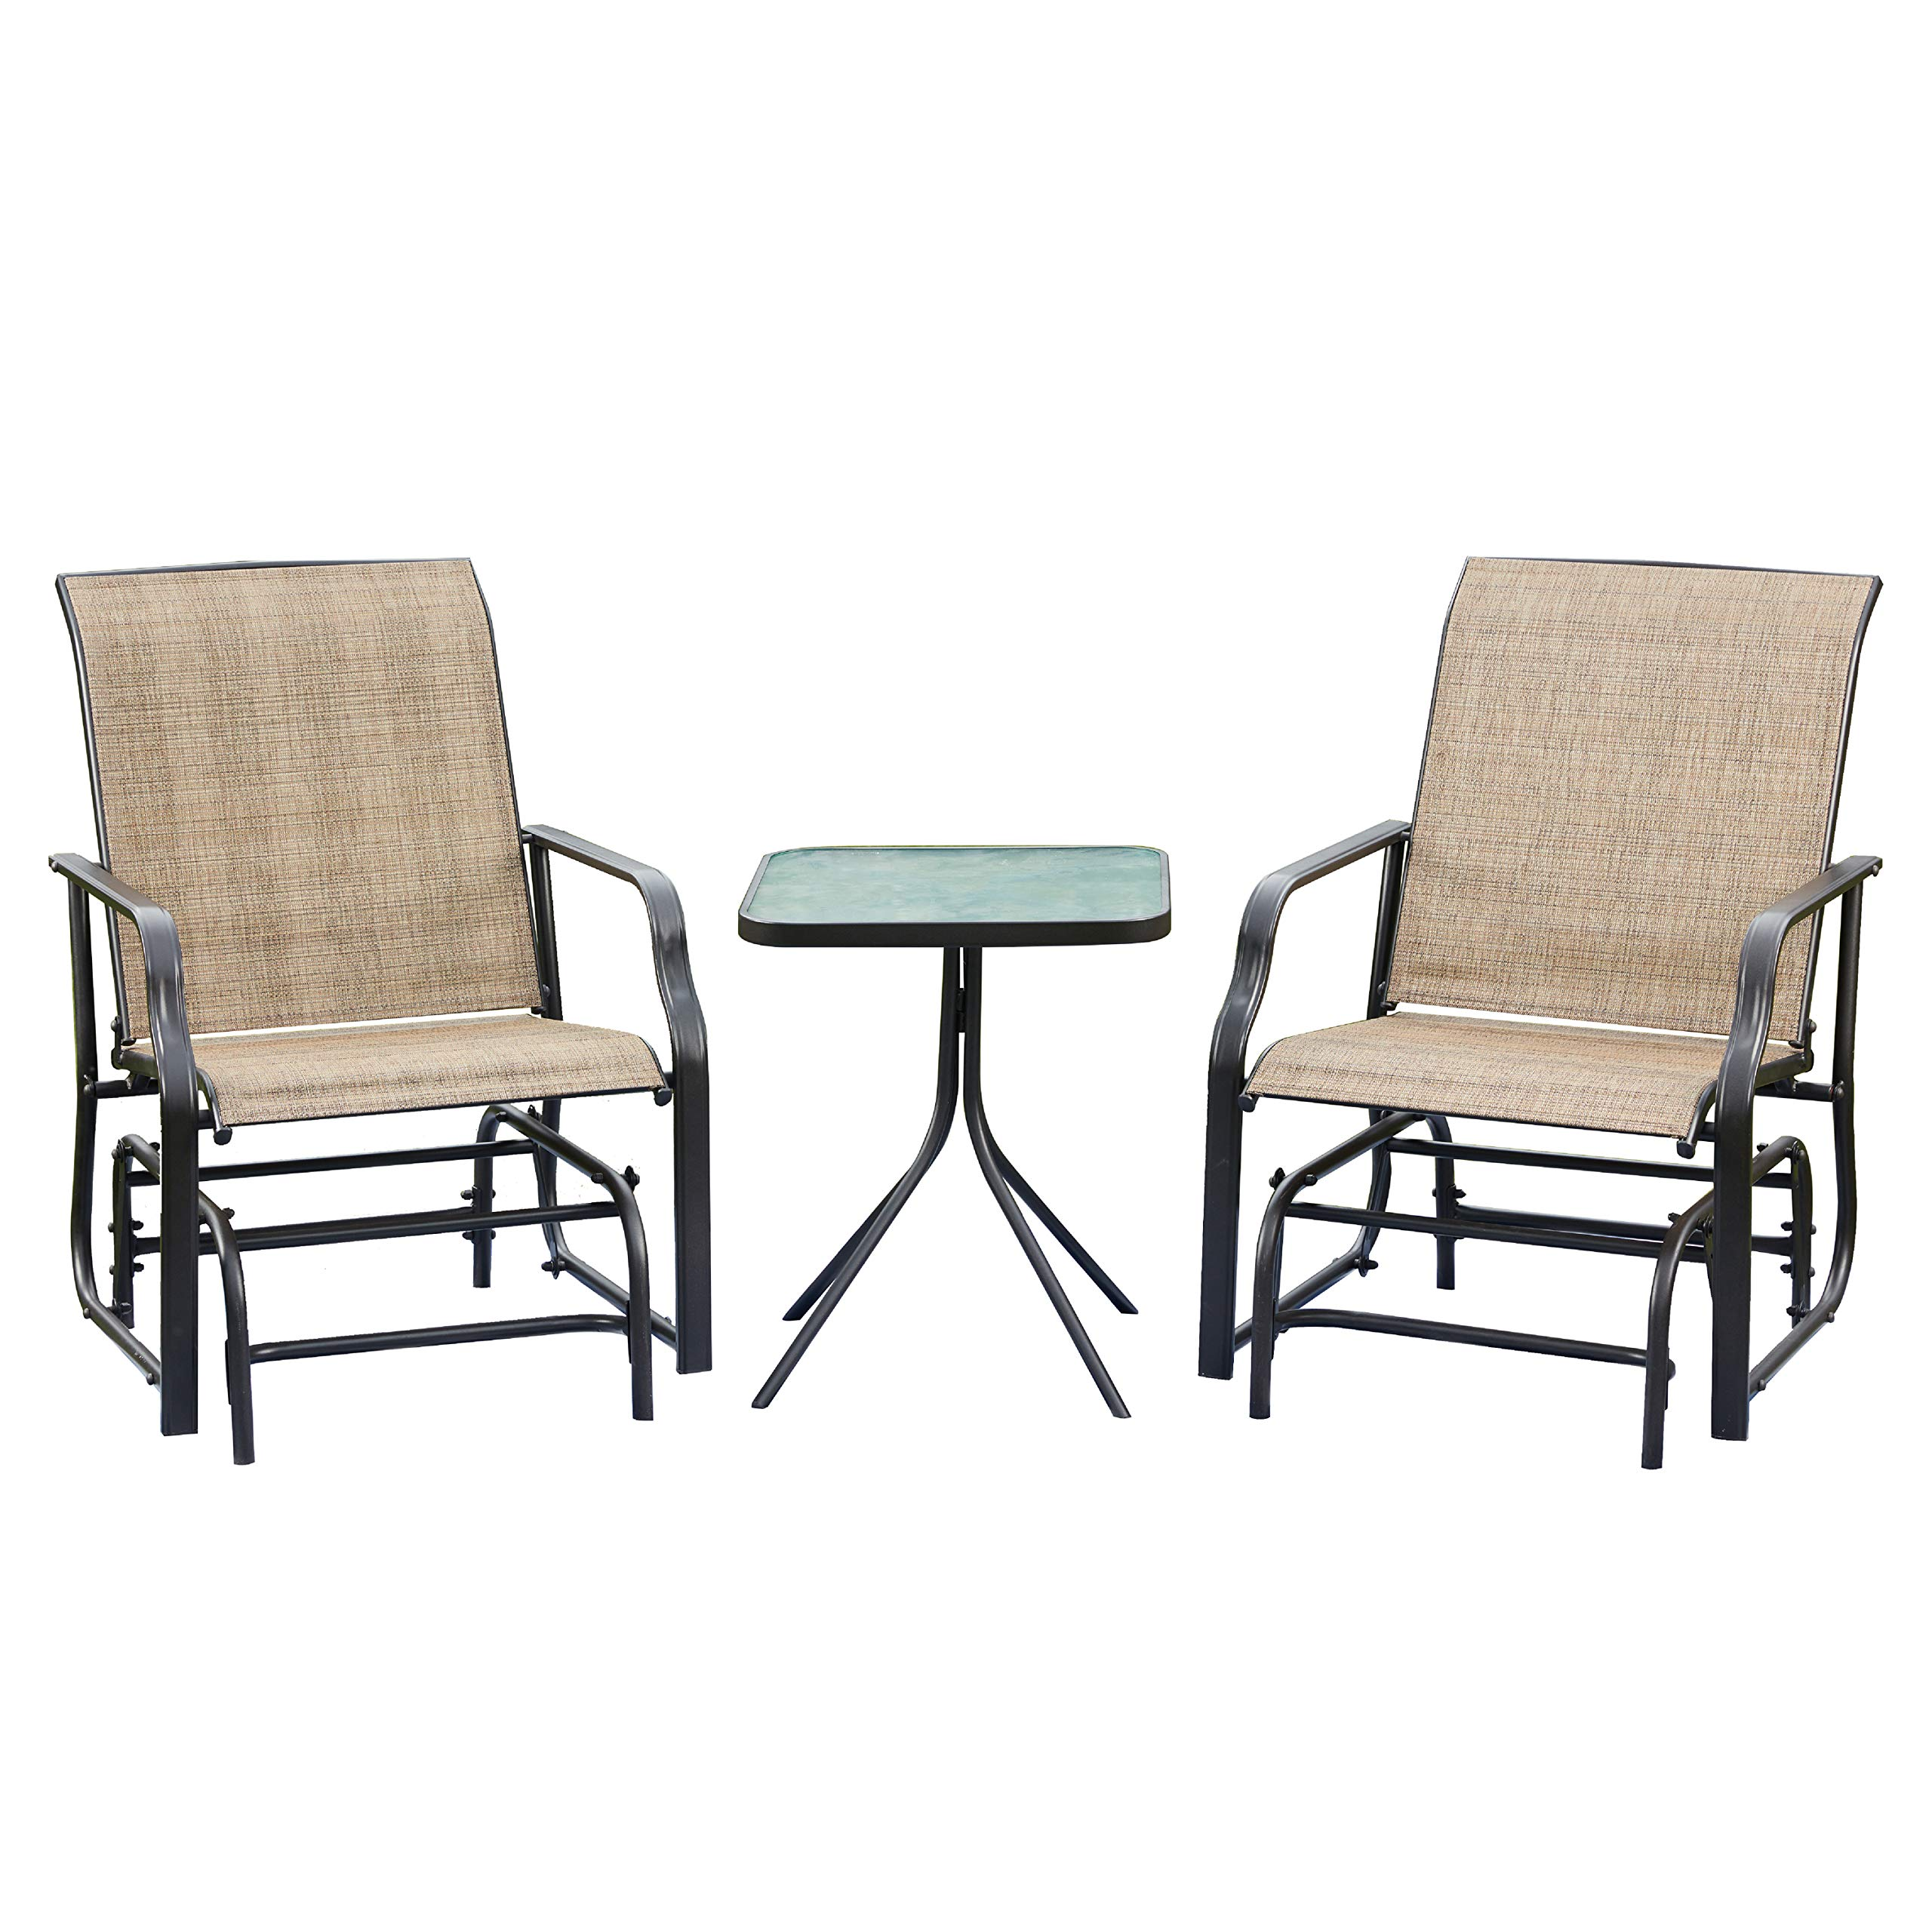 LOKATSE HOME 3 Piece Outdoor Patio Glider Set with 2 Rocking Chairs and 1 Glass Top Table, Natural